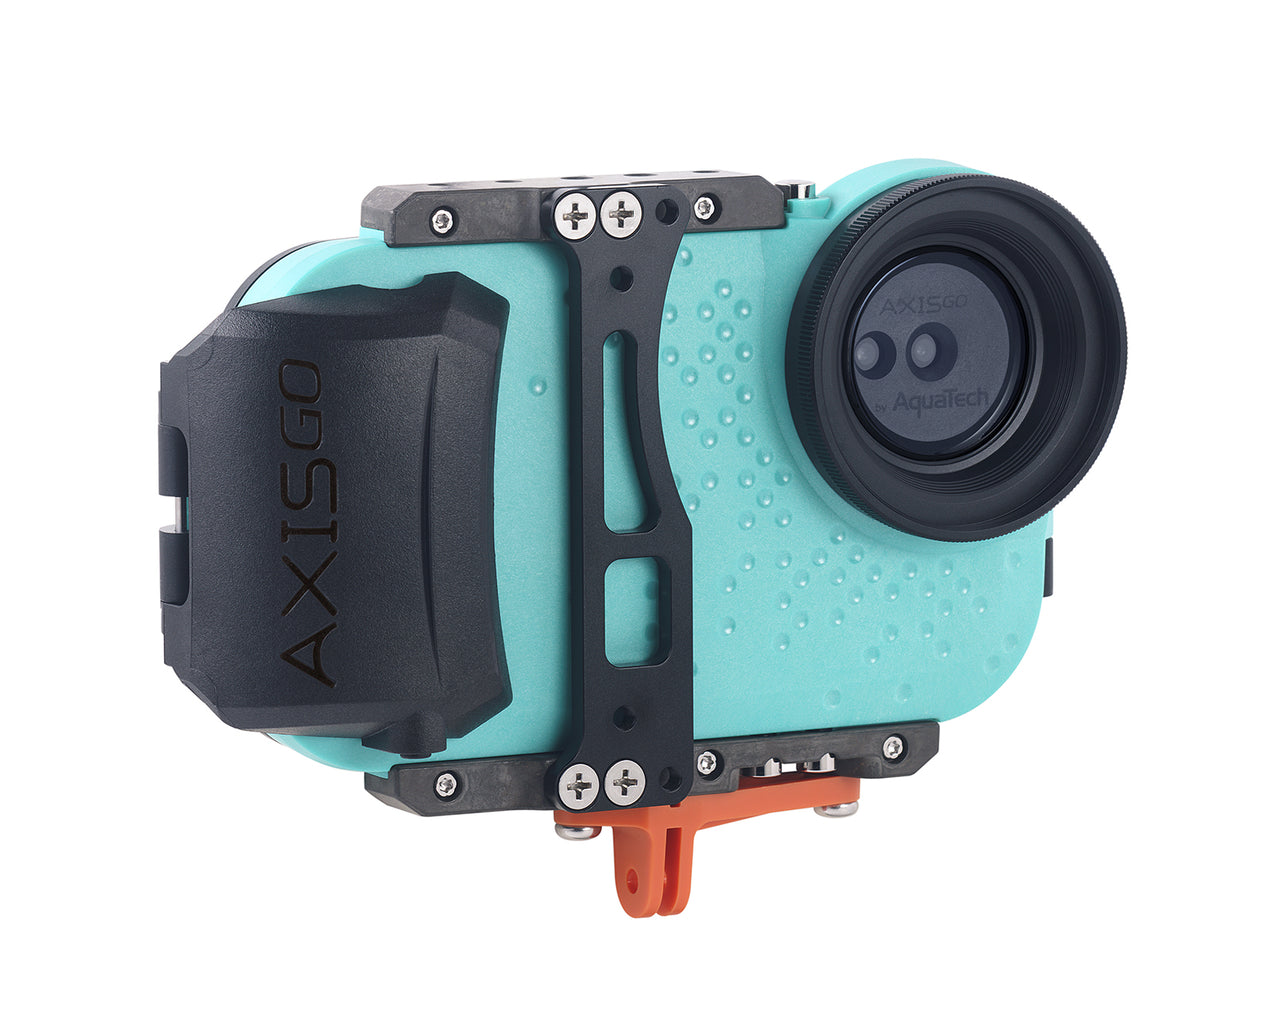 AxisGO X Action Mounting Kit